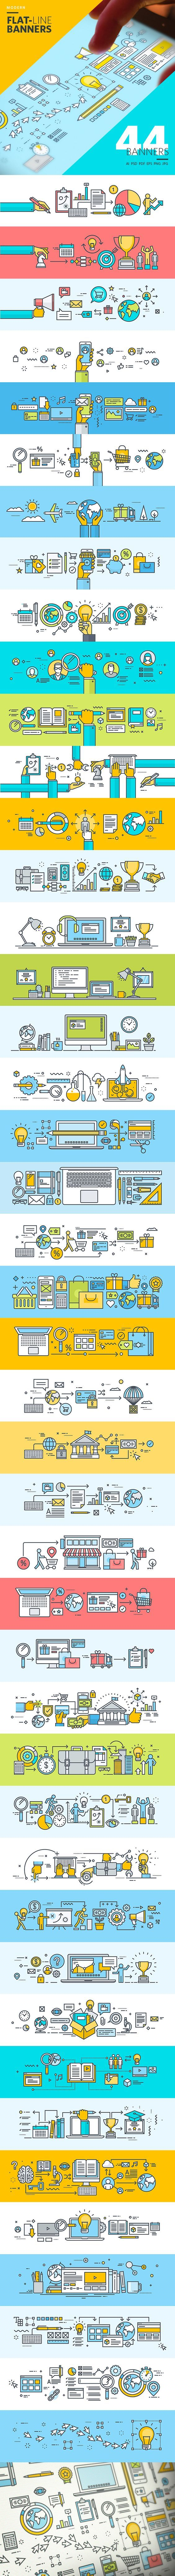 64 Best Flat Design Picture Images On Pinterest Walls Animation Circuit Board By Coldbroken Deviantart Set Of Modern Line Banners Behance